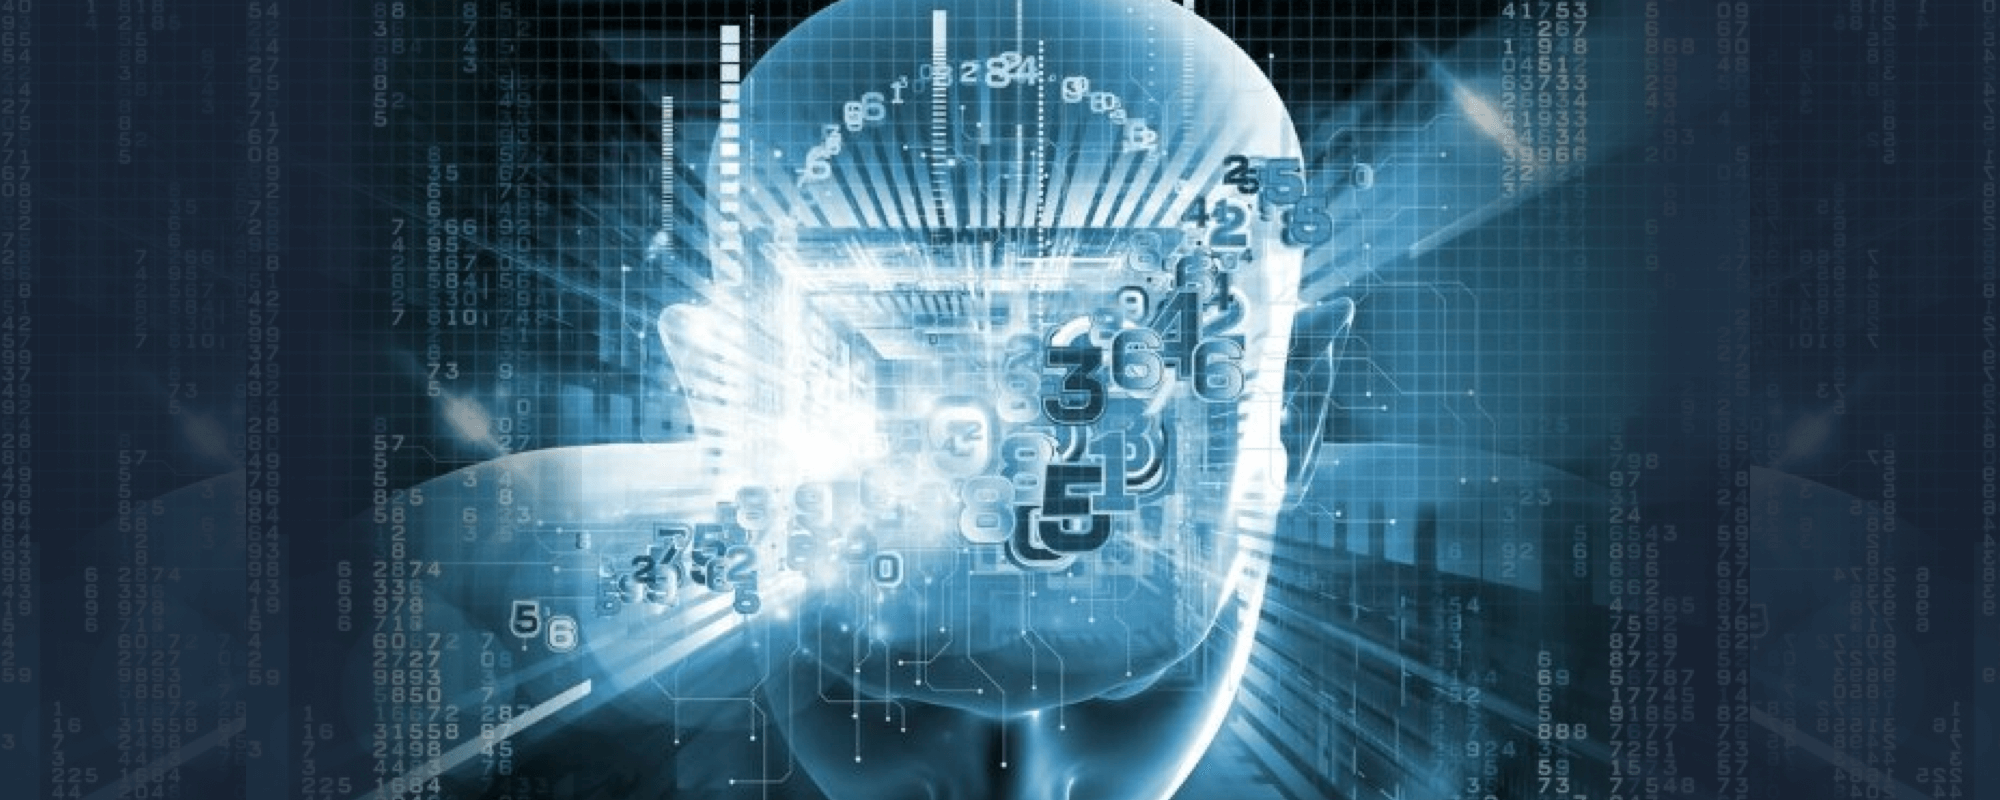 What does the future hold for AI in e-learning?